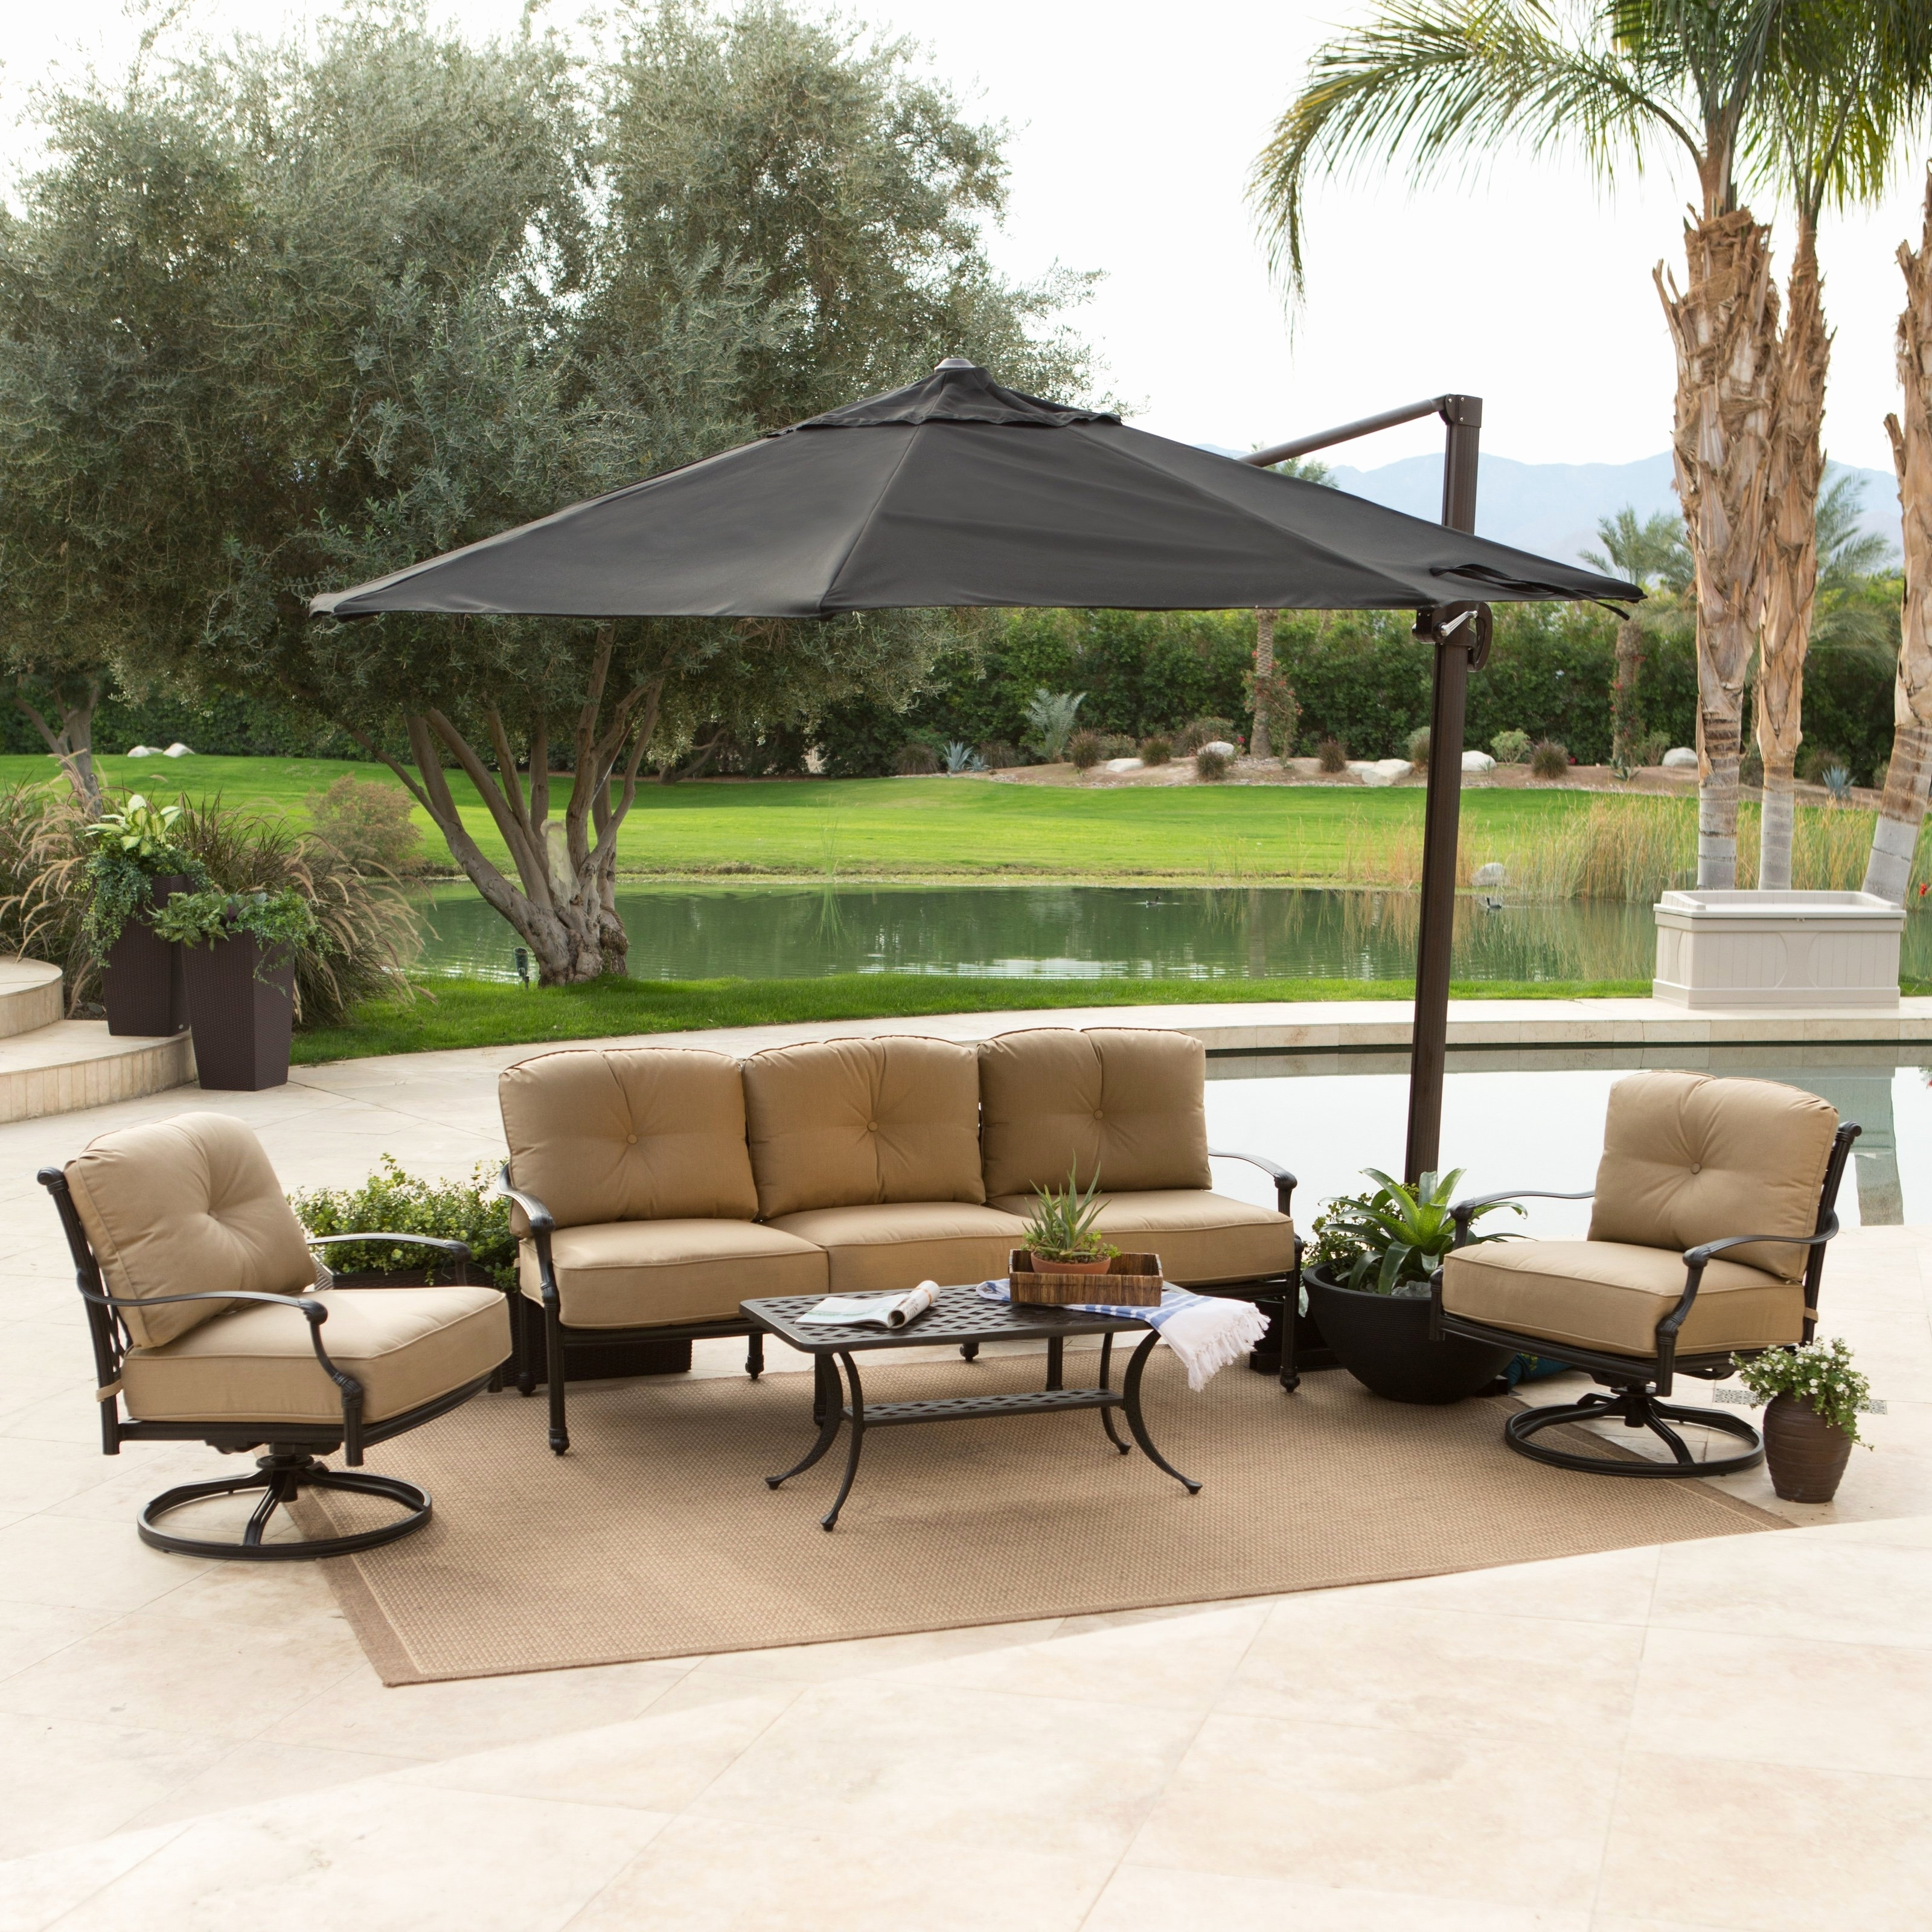 Vinyl Patio Umbrellas With Fringe (View 18 of 20)